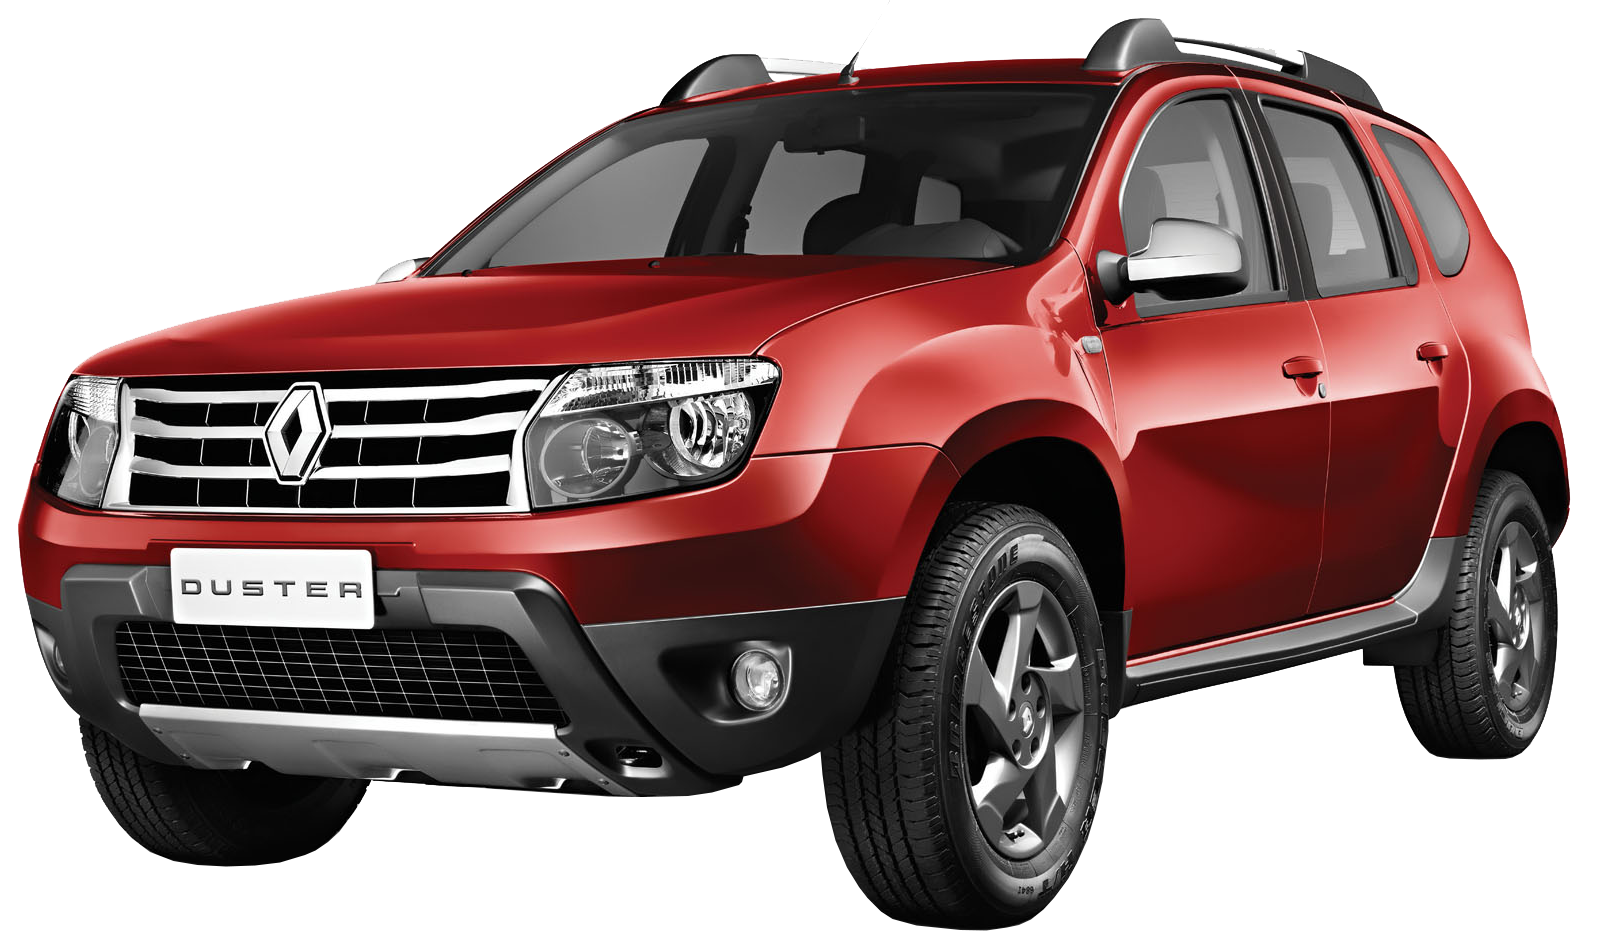 Car front view clipart vector library Renault Duster PNG Clipart - Download free images in PNG vector library